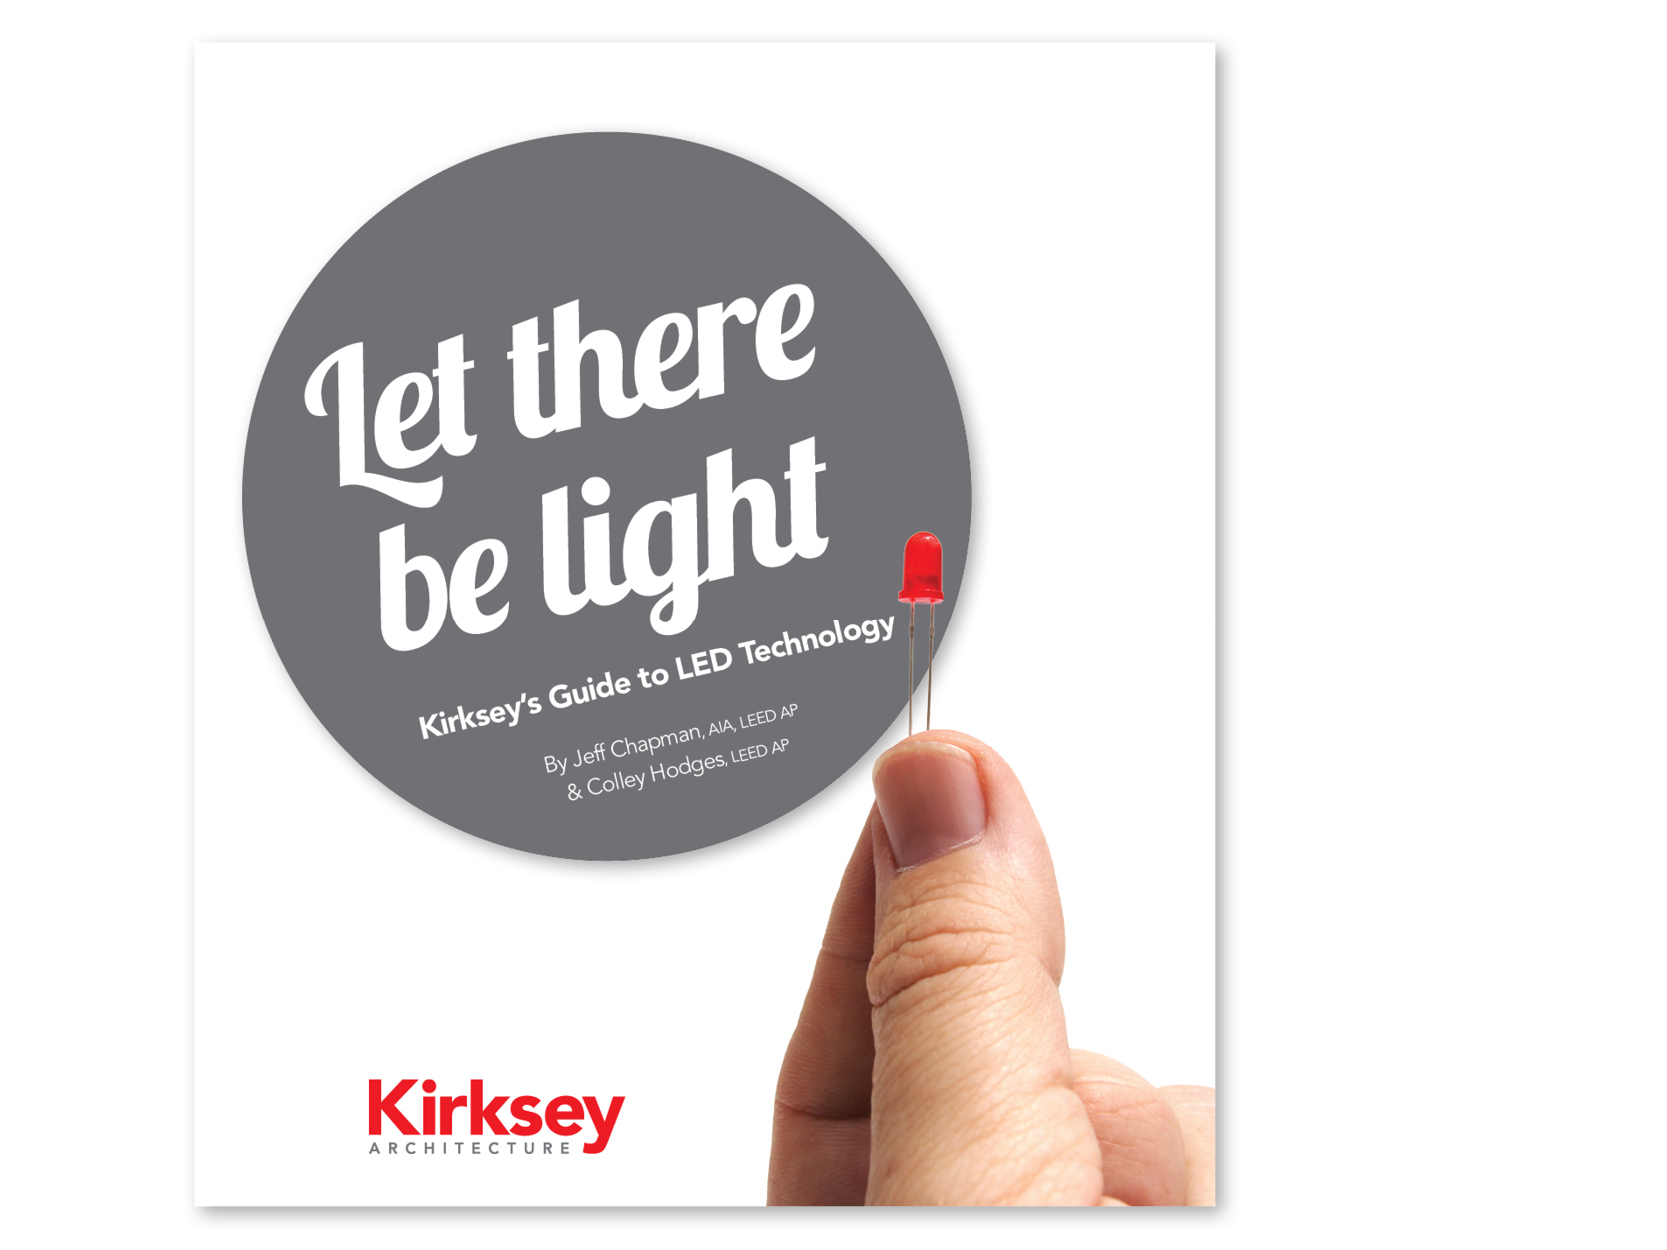 Preview of the resource library item for Let there be light: Kirksey's Guide to LED Technology